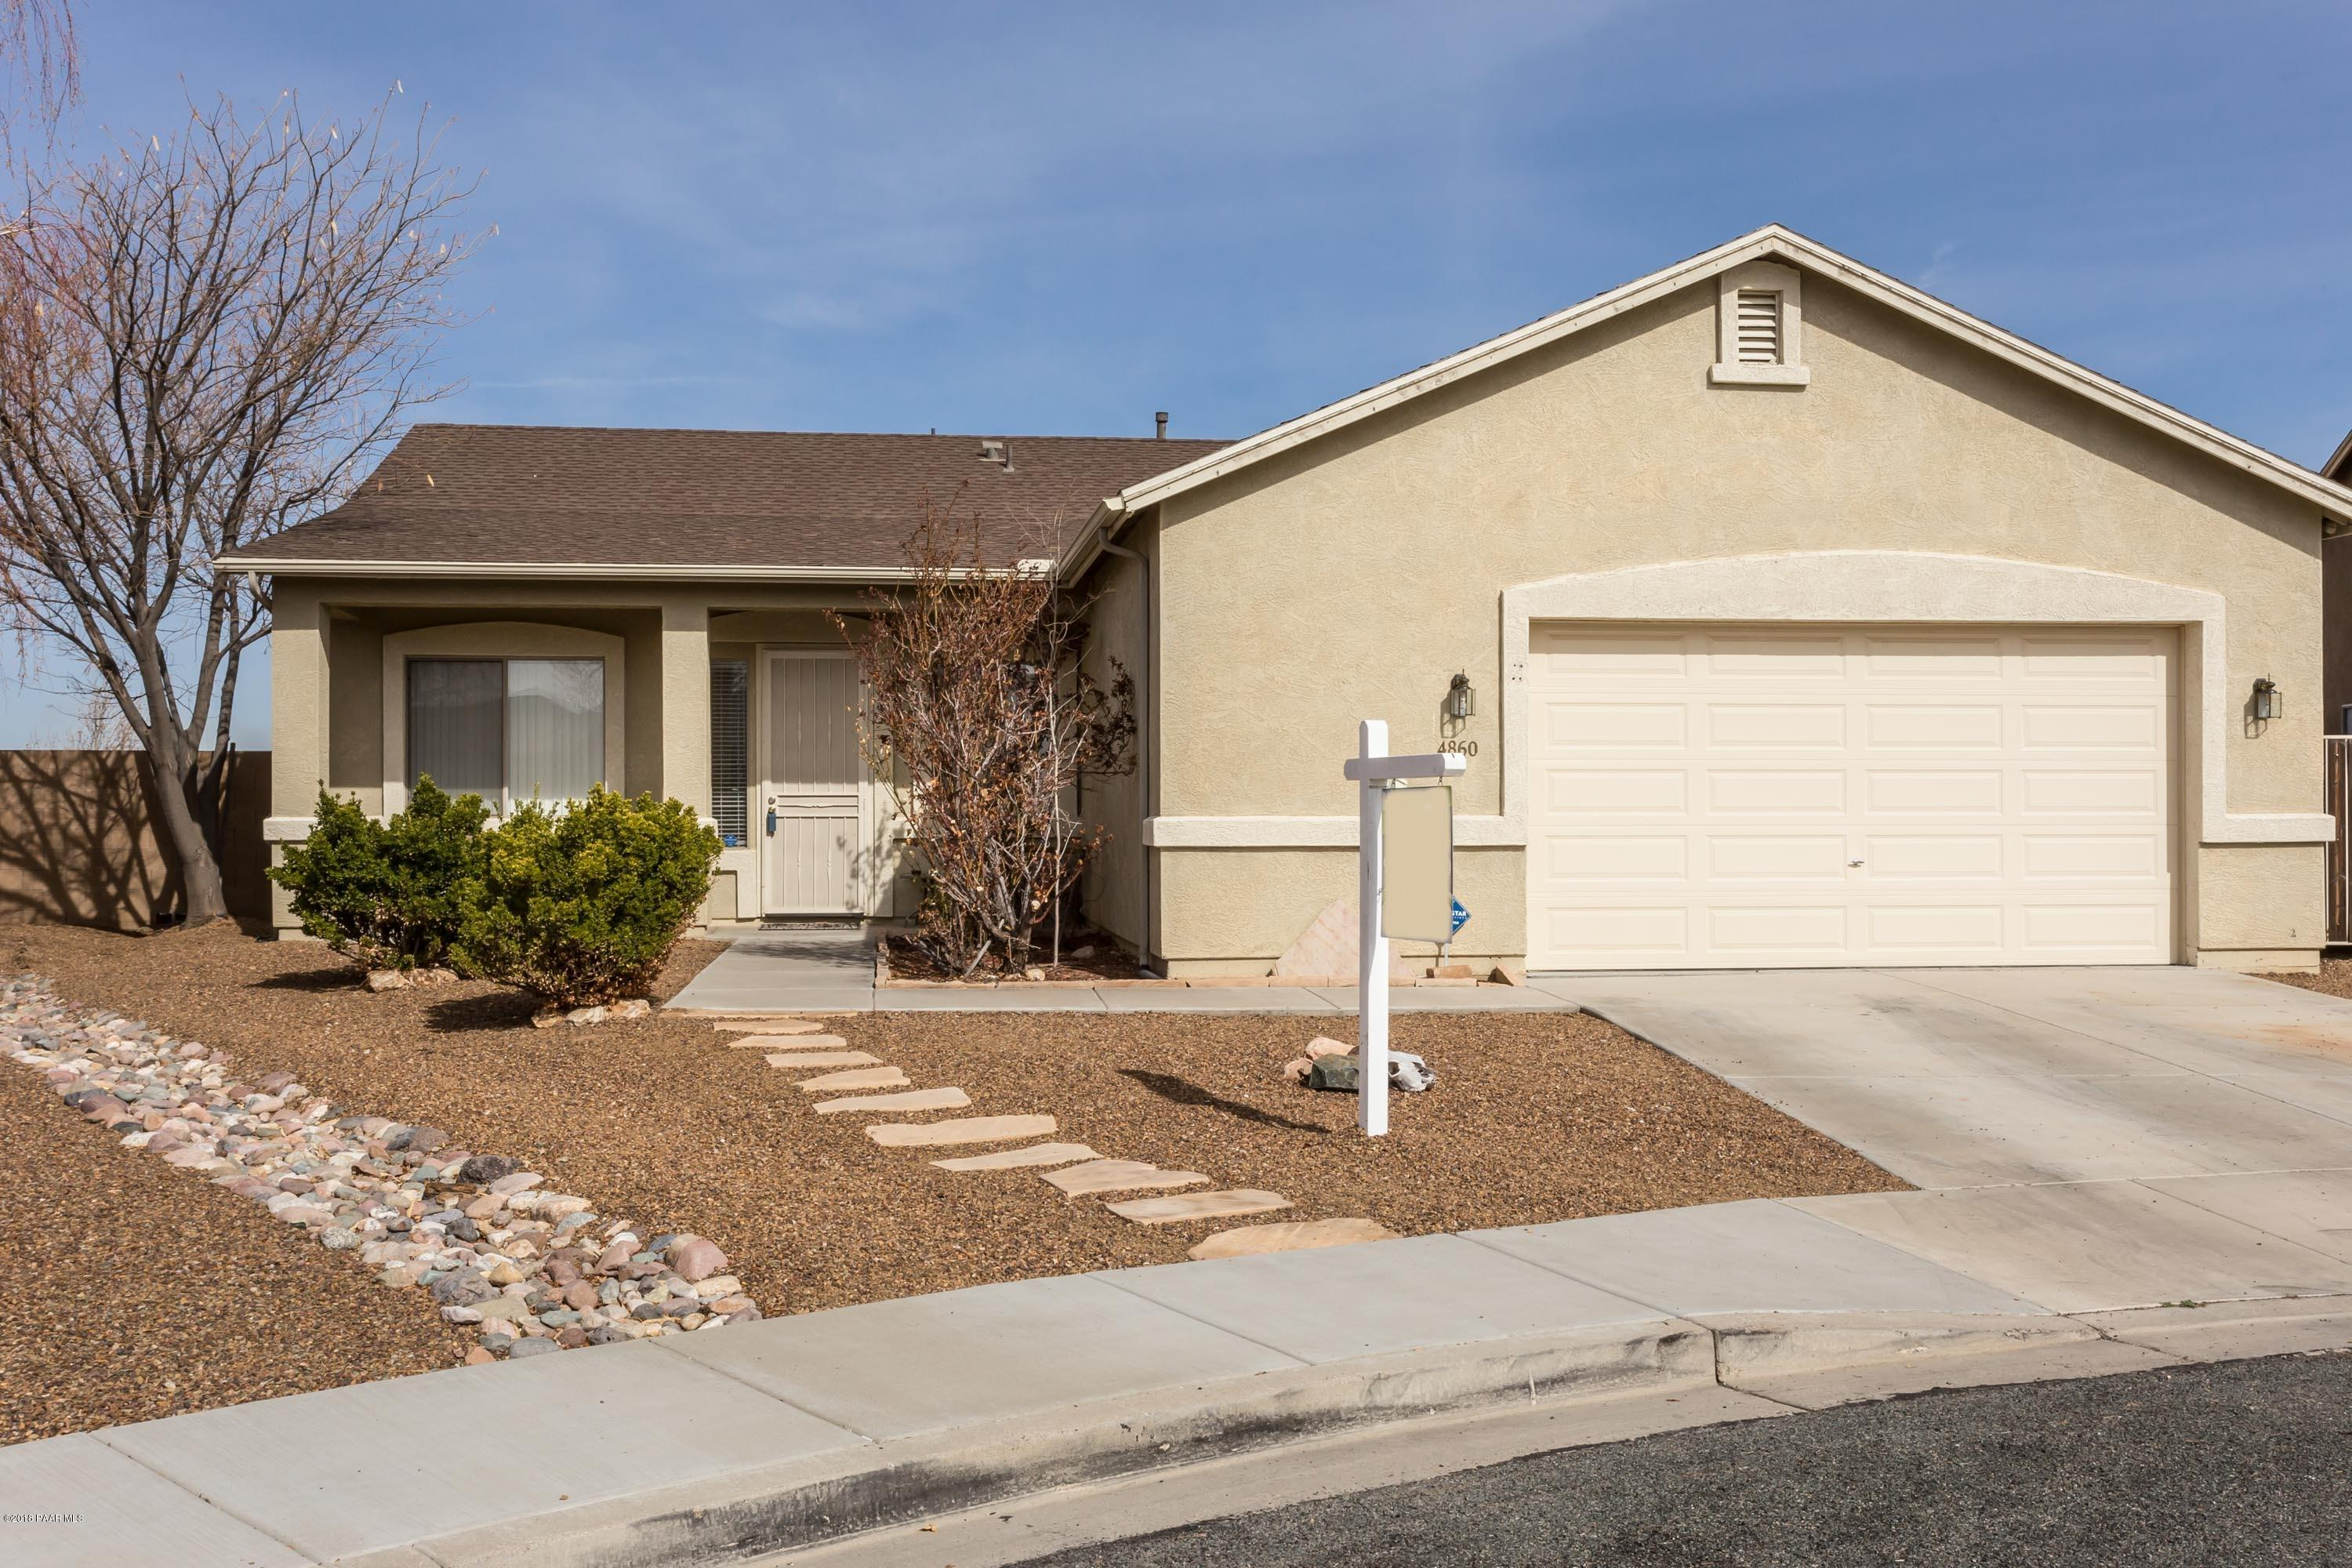 Photo of 4860 Edgemont, Prescott Valley, AZ 86314